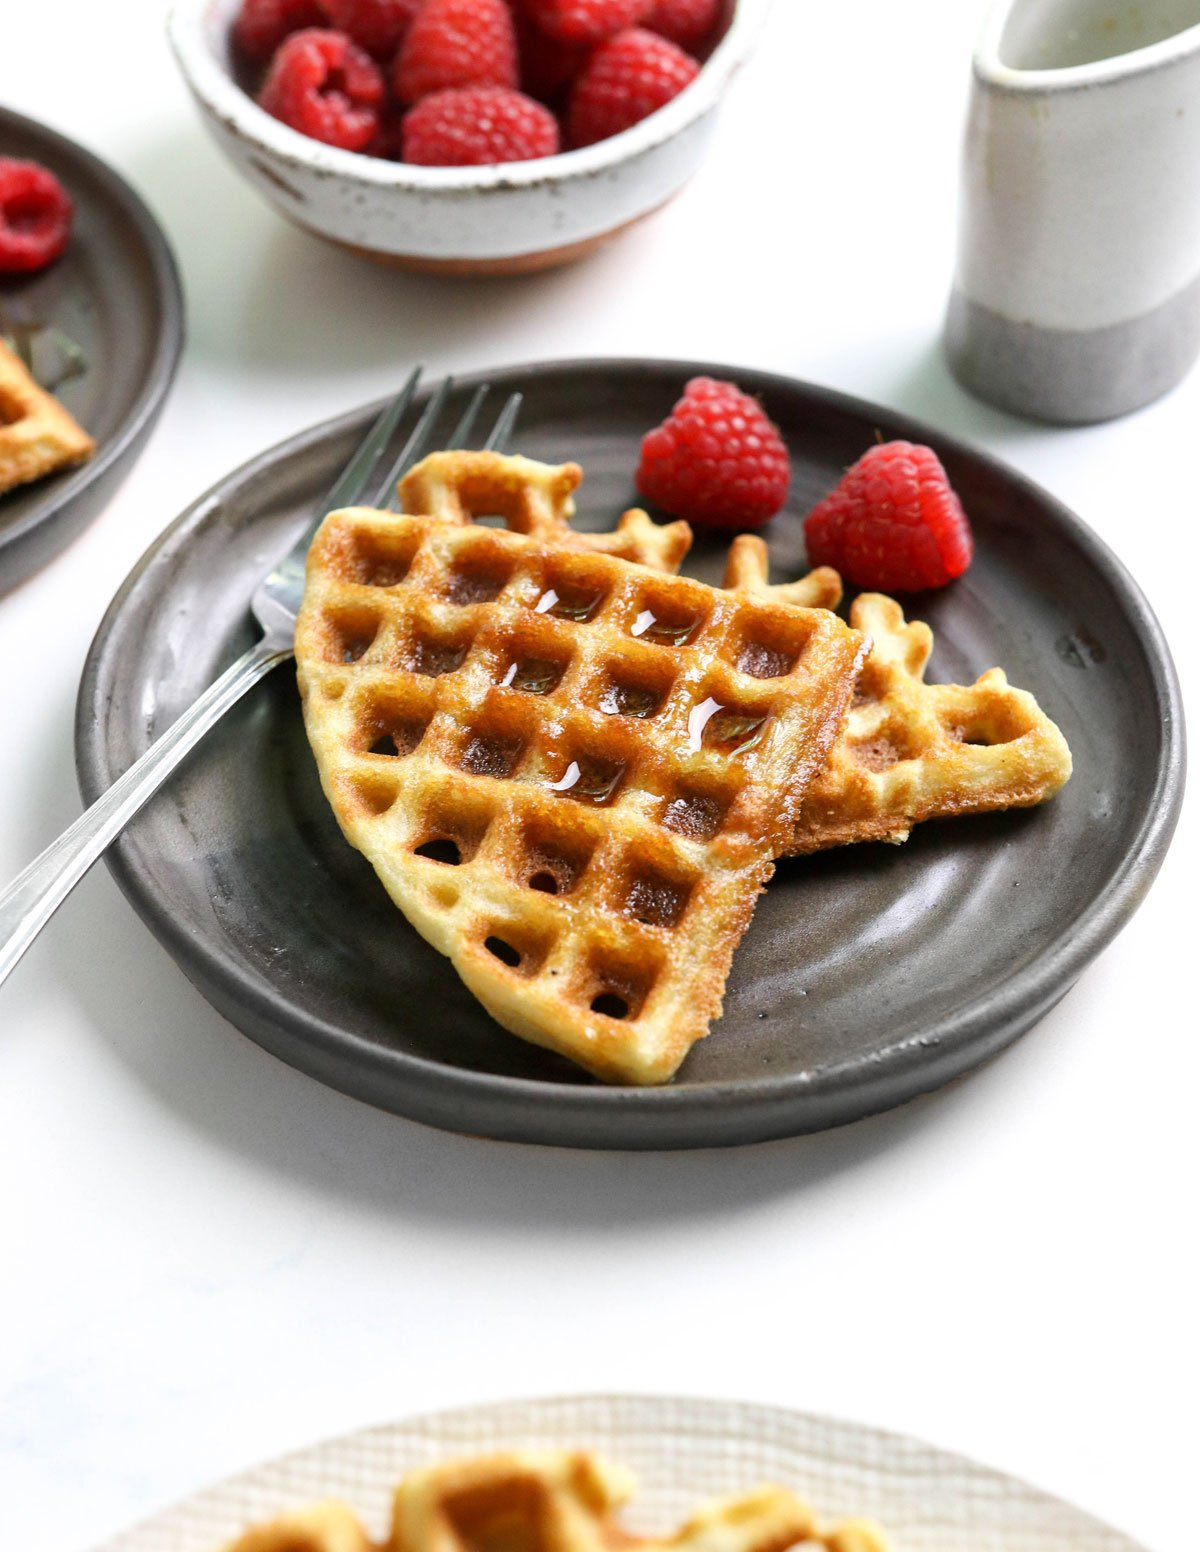 coconut flour waffles on dark plate